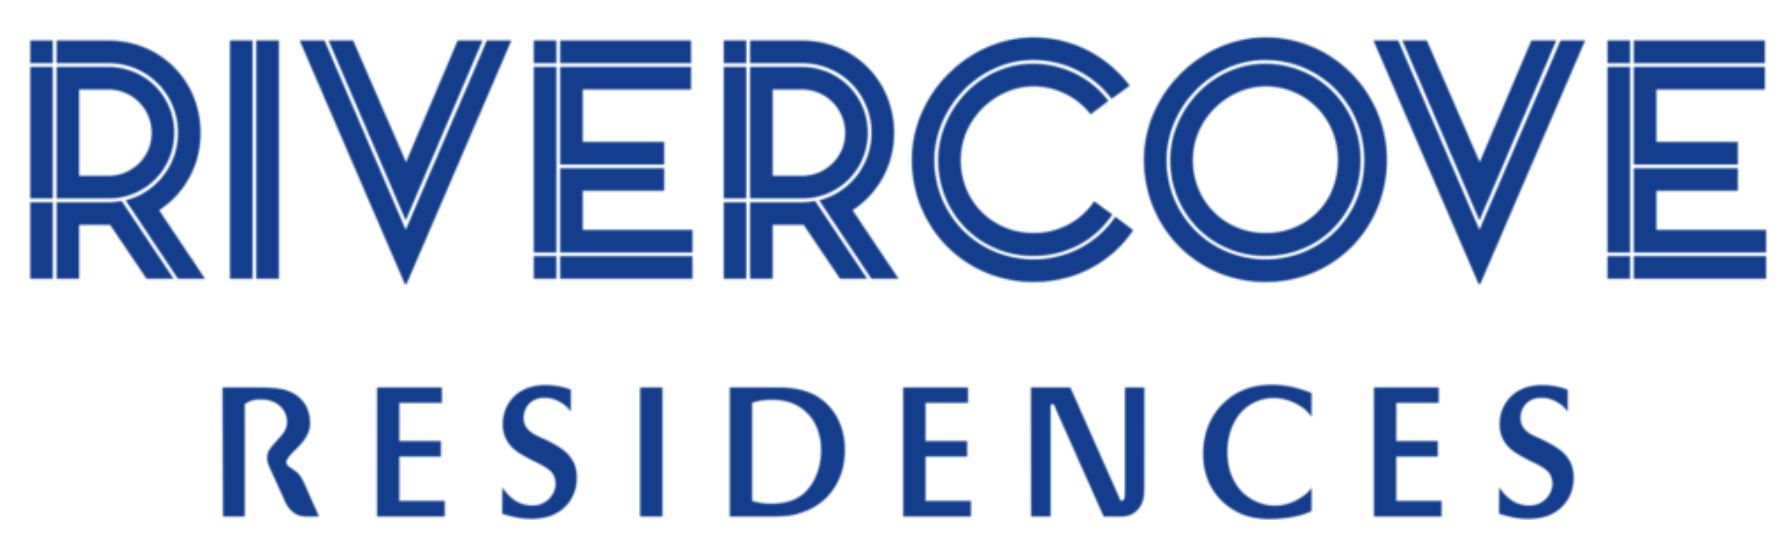 Rivercove Residences Logo